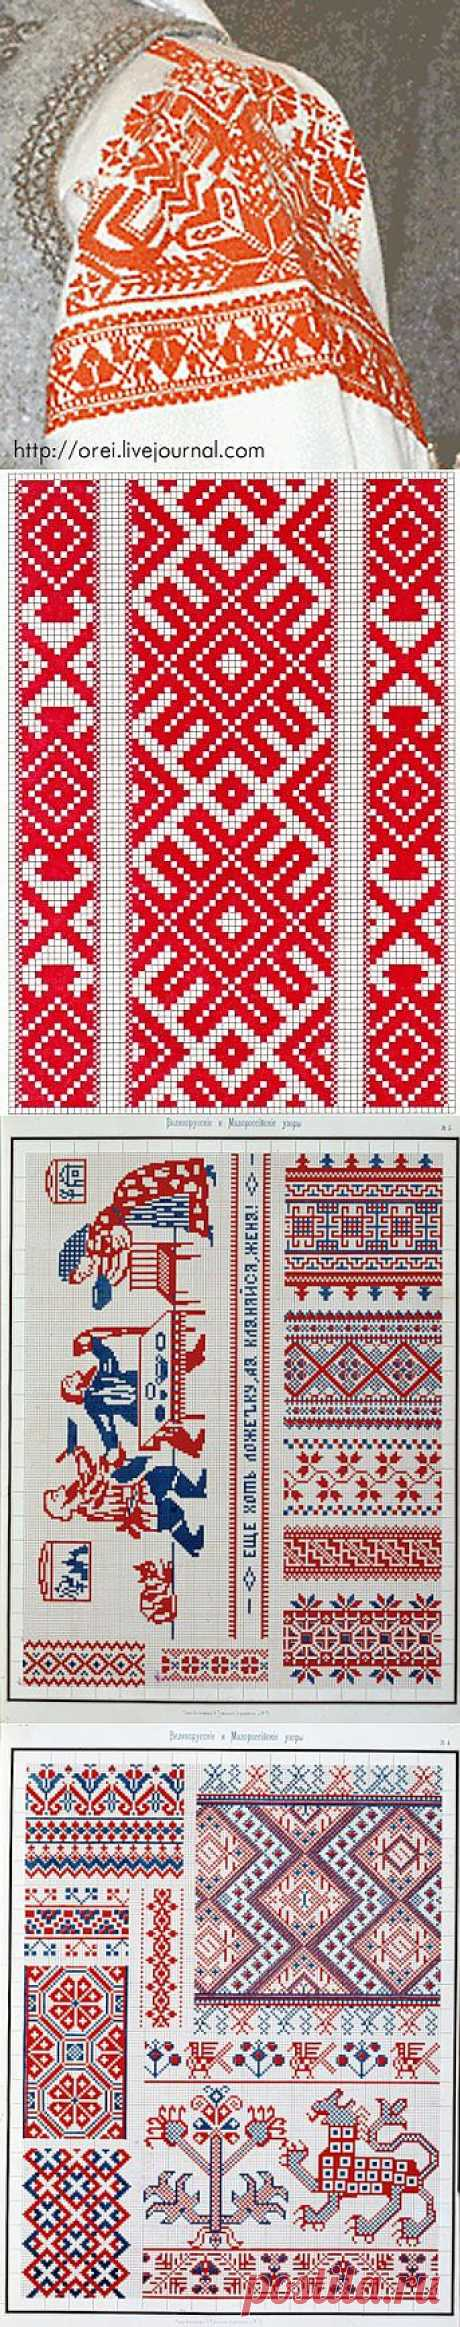 Embroidery as a charm in Russia.